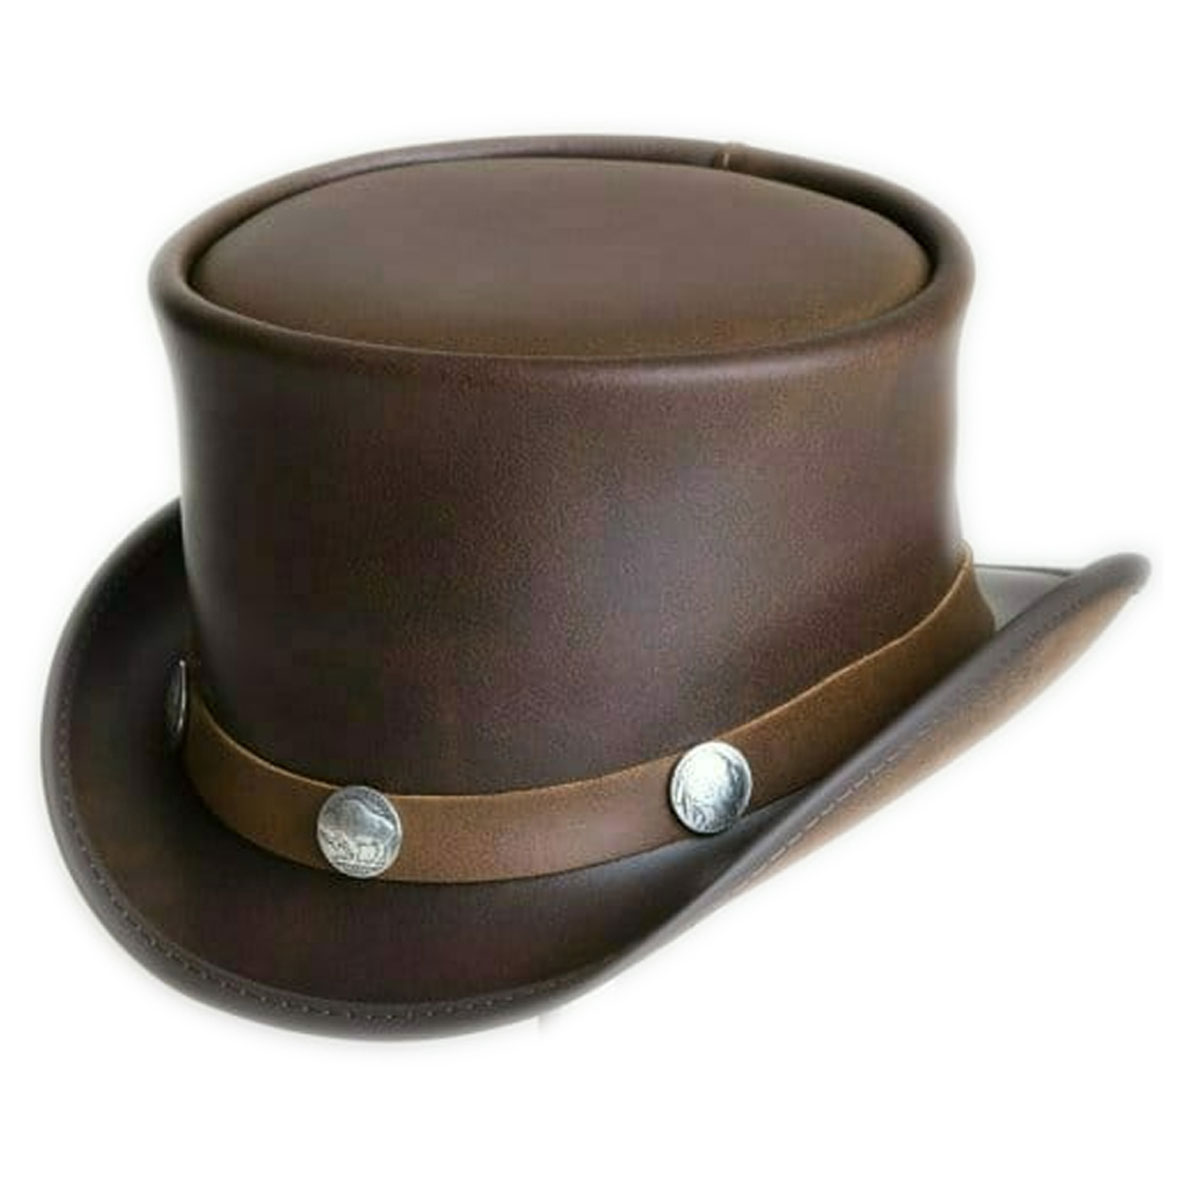 BROWN LEATHER HAT WITH CURVES